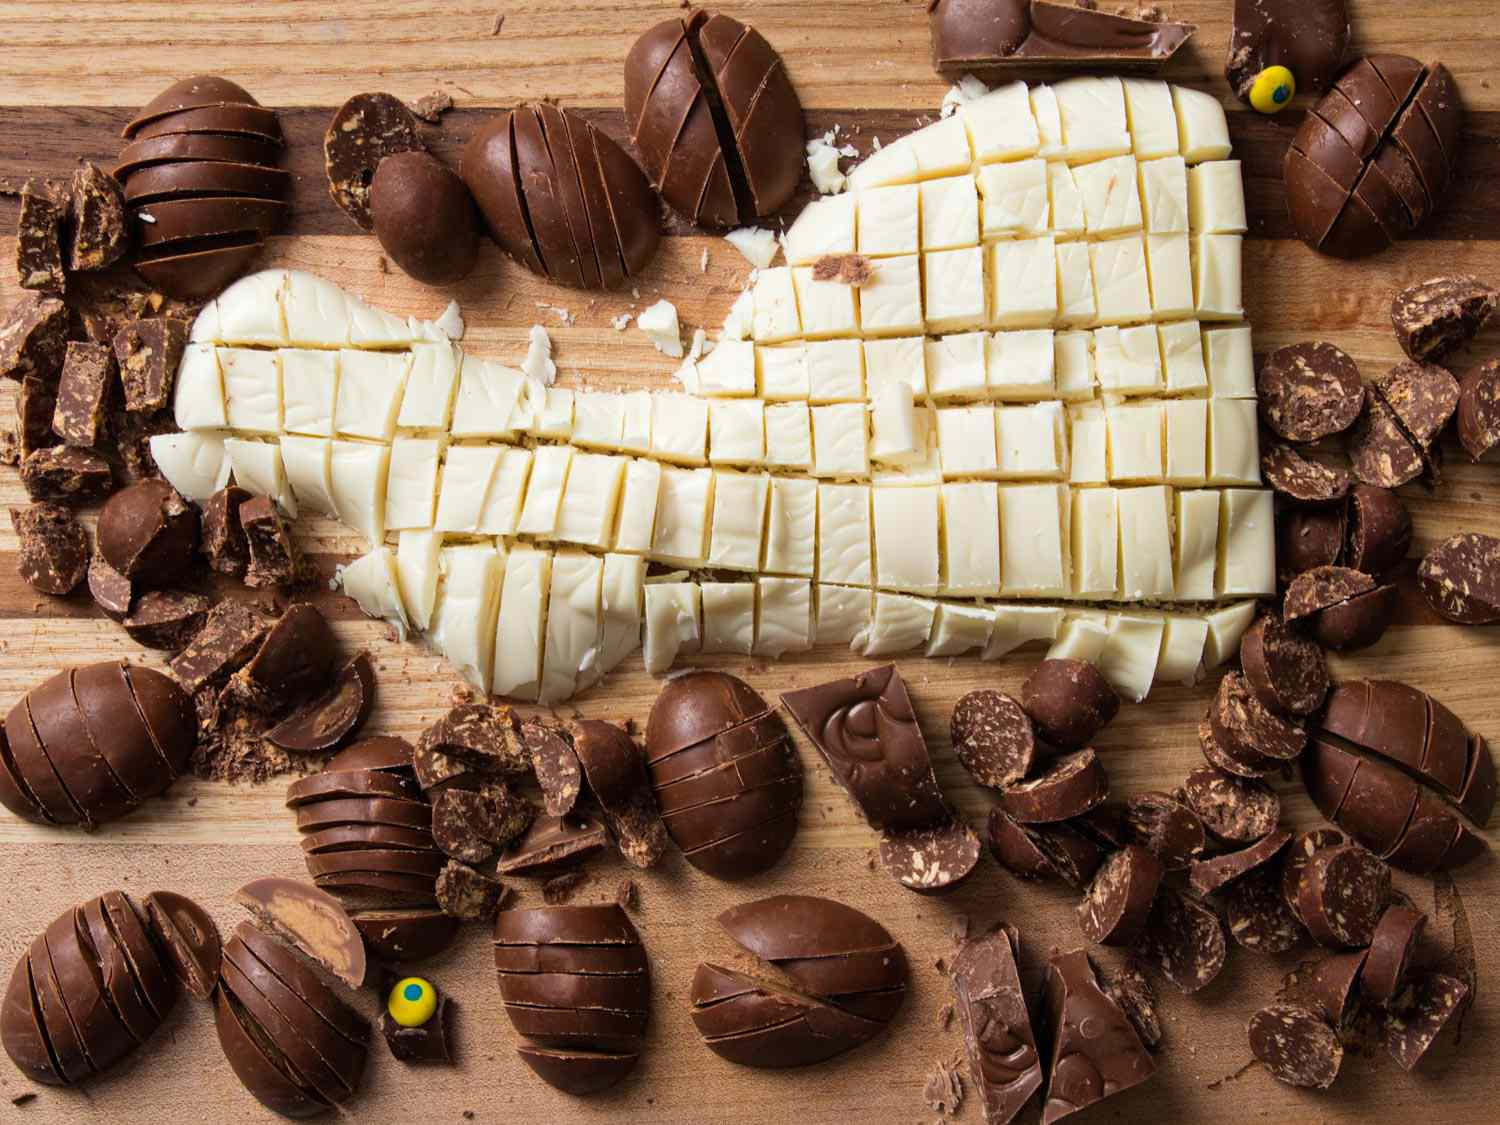 20170302-easter-candy-chocolate-cookies-vicky-wasik-16.jpg